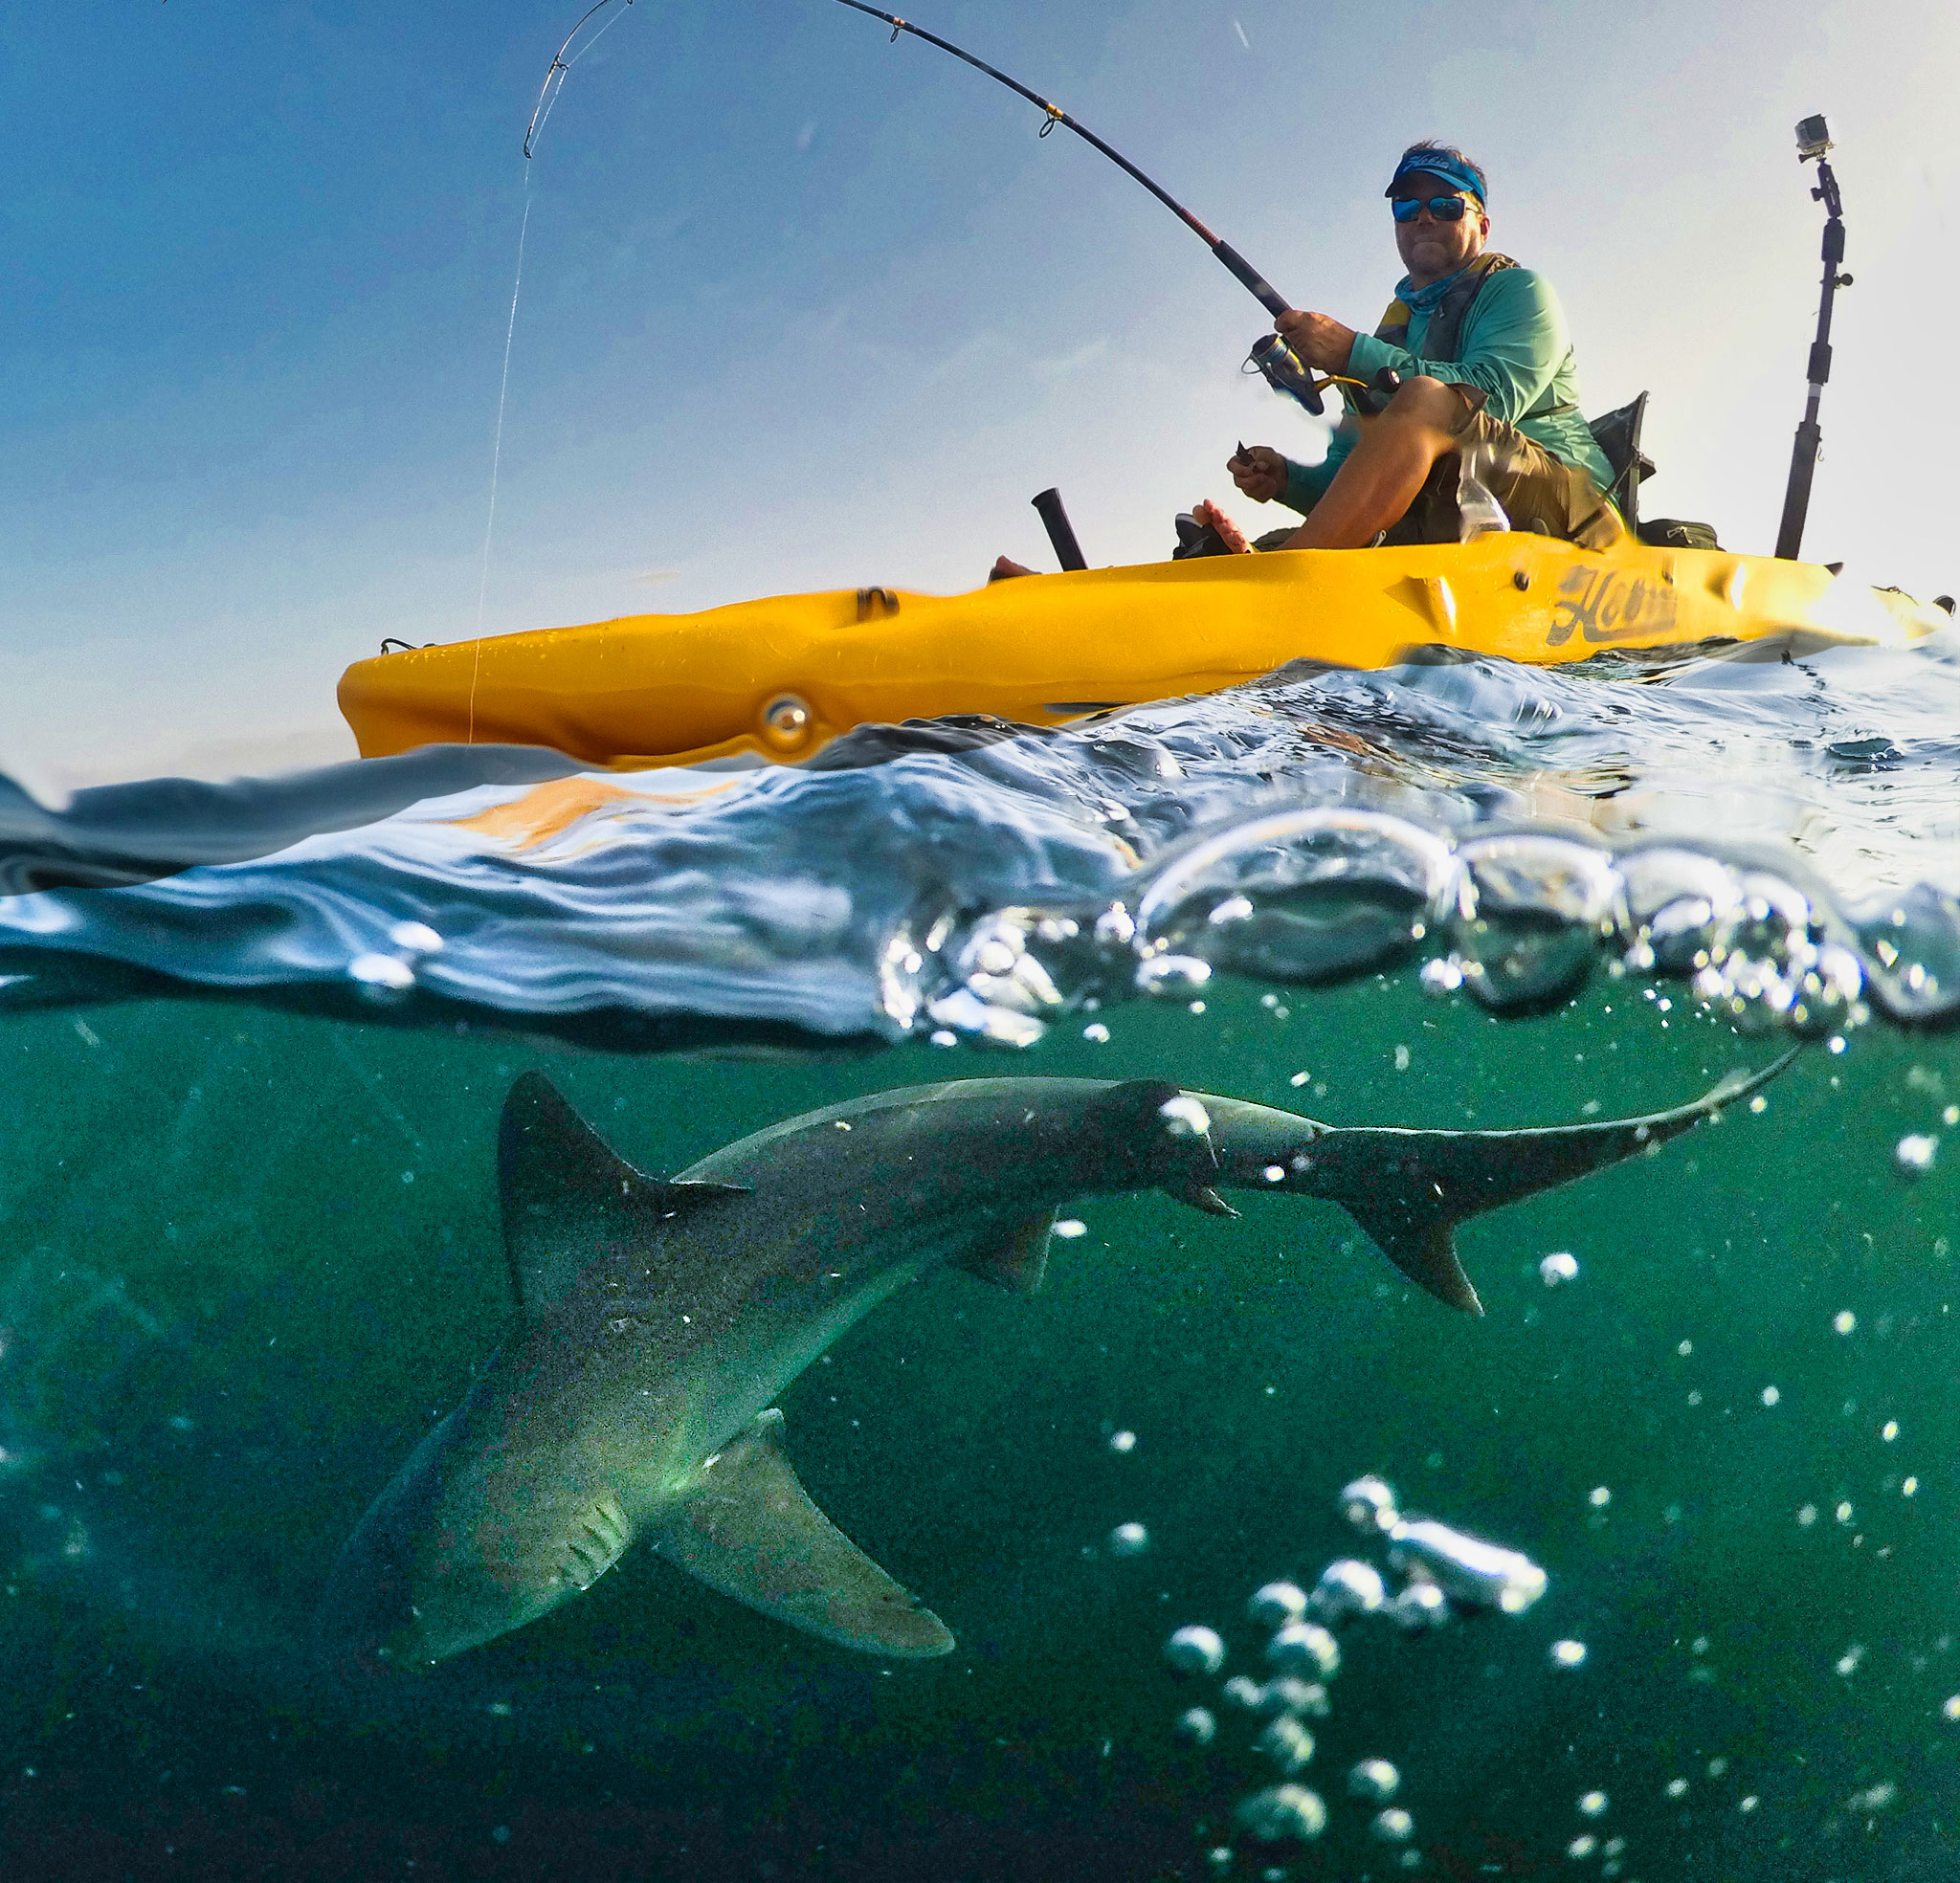 Sharks do not have to be brought on board the kayak and can be exempt from measuring under the program rules. This shark clearly exceeds the 48-inch minimum and will be entry No. 9 for Steve Neece in the BCKFC Master Angler program.